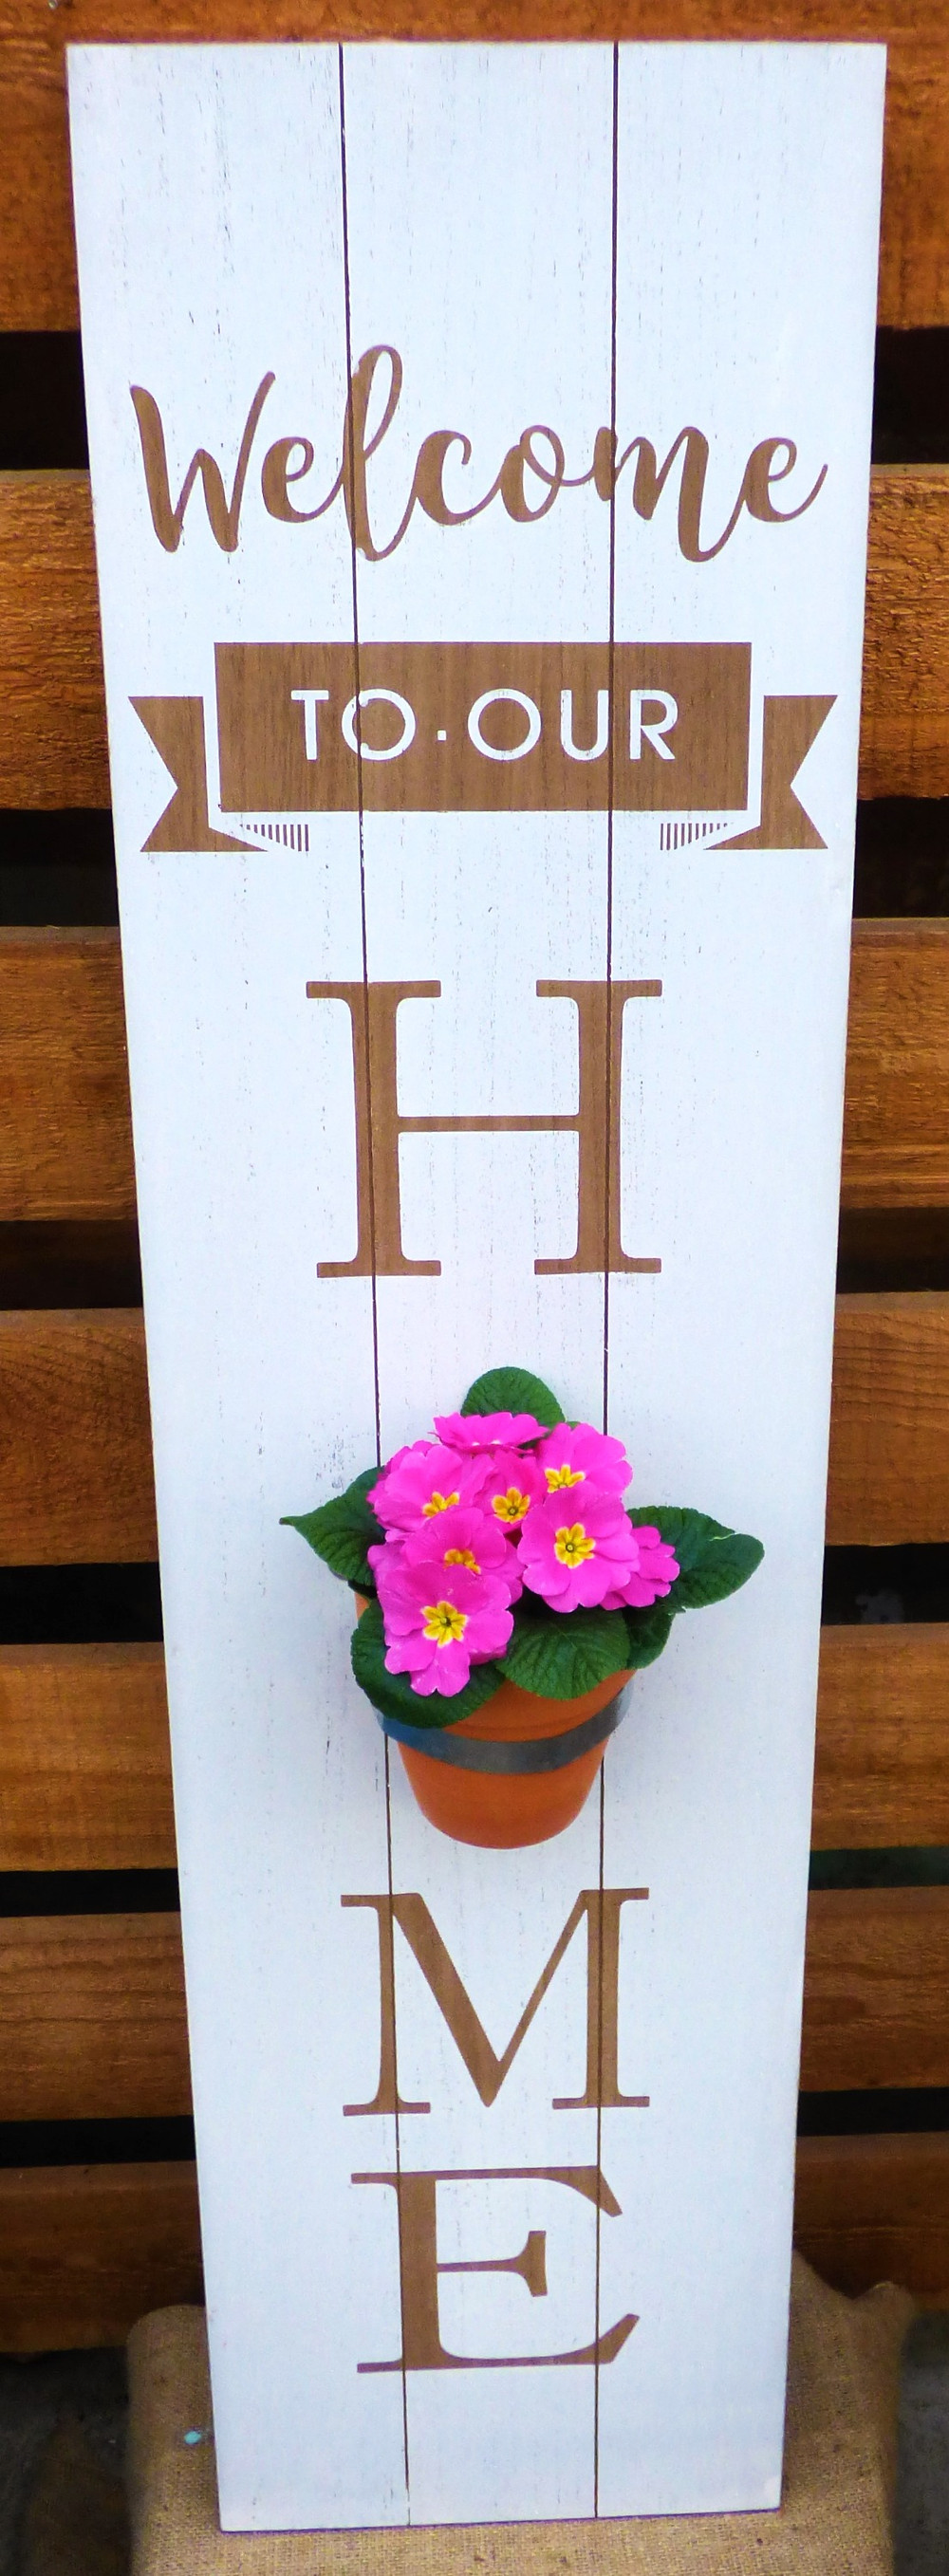 Decor sign with Polyantha Primula.